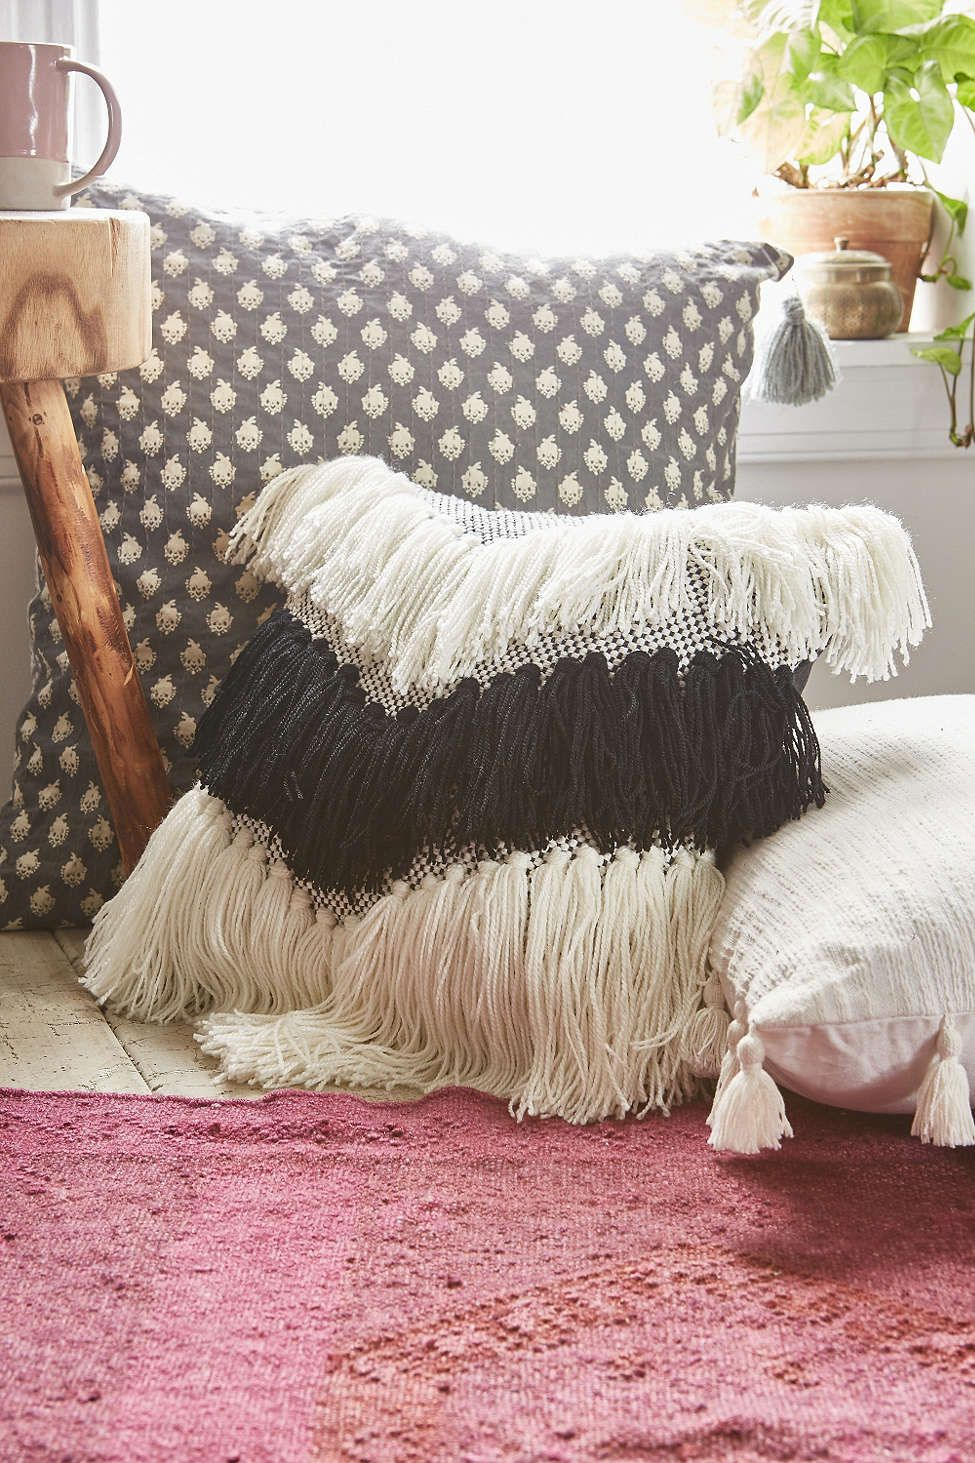 Assembly Home Wilmeth Inky Pillow - Urban Outfitters #UOonCampus